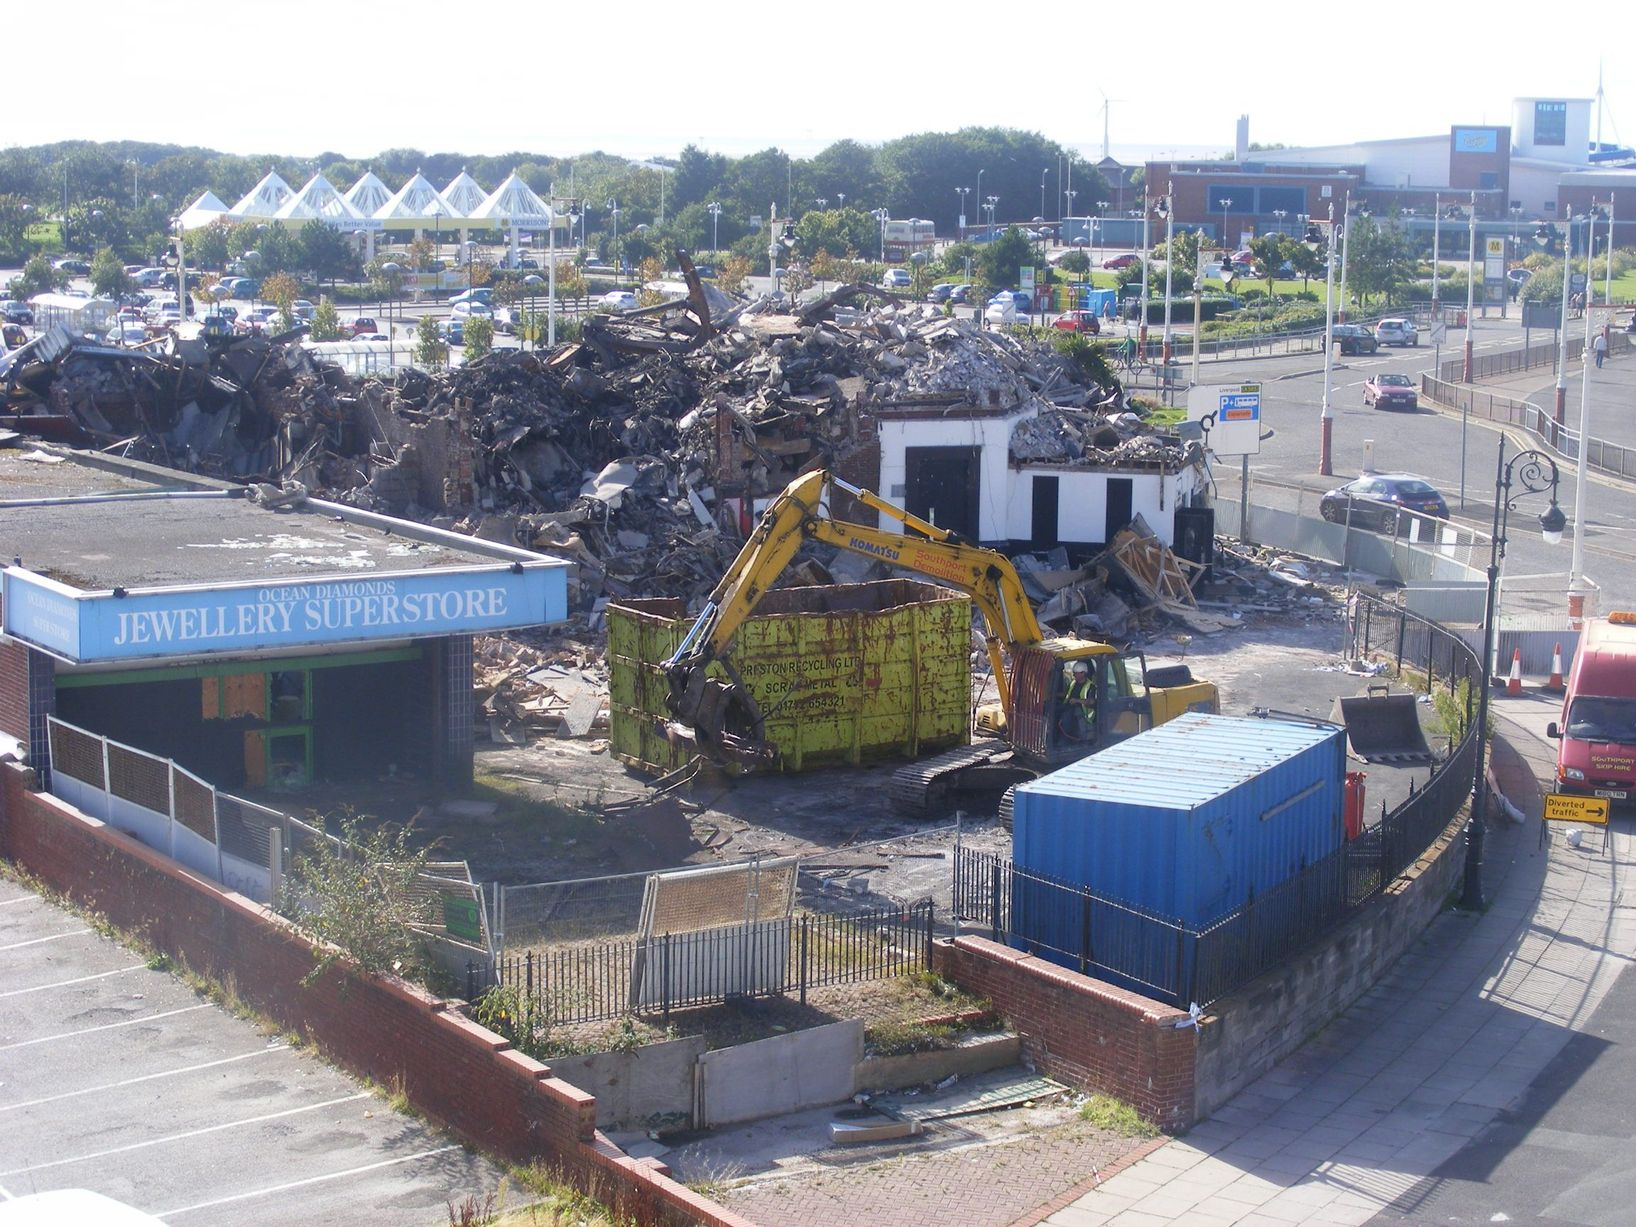 An aerial shot of demolition work starting at the Kingsway site in Southport after the fire